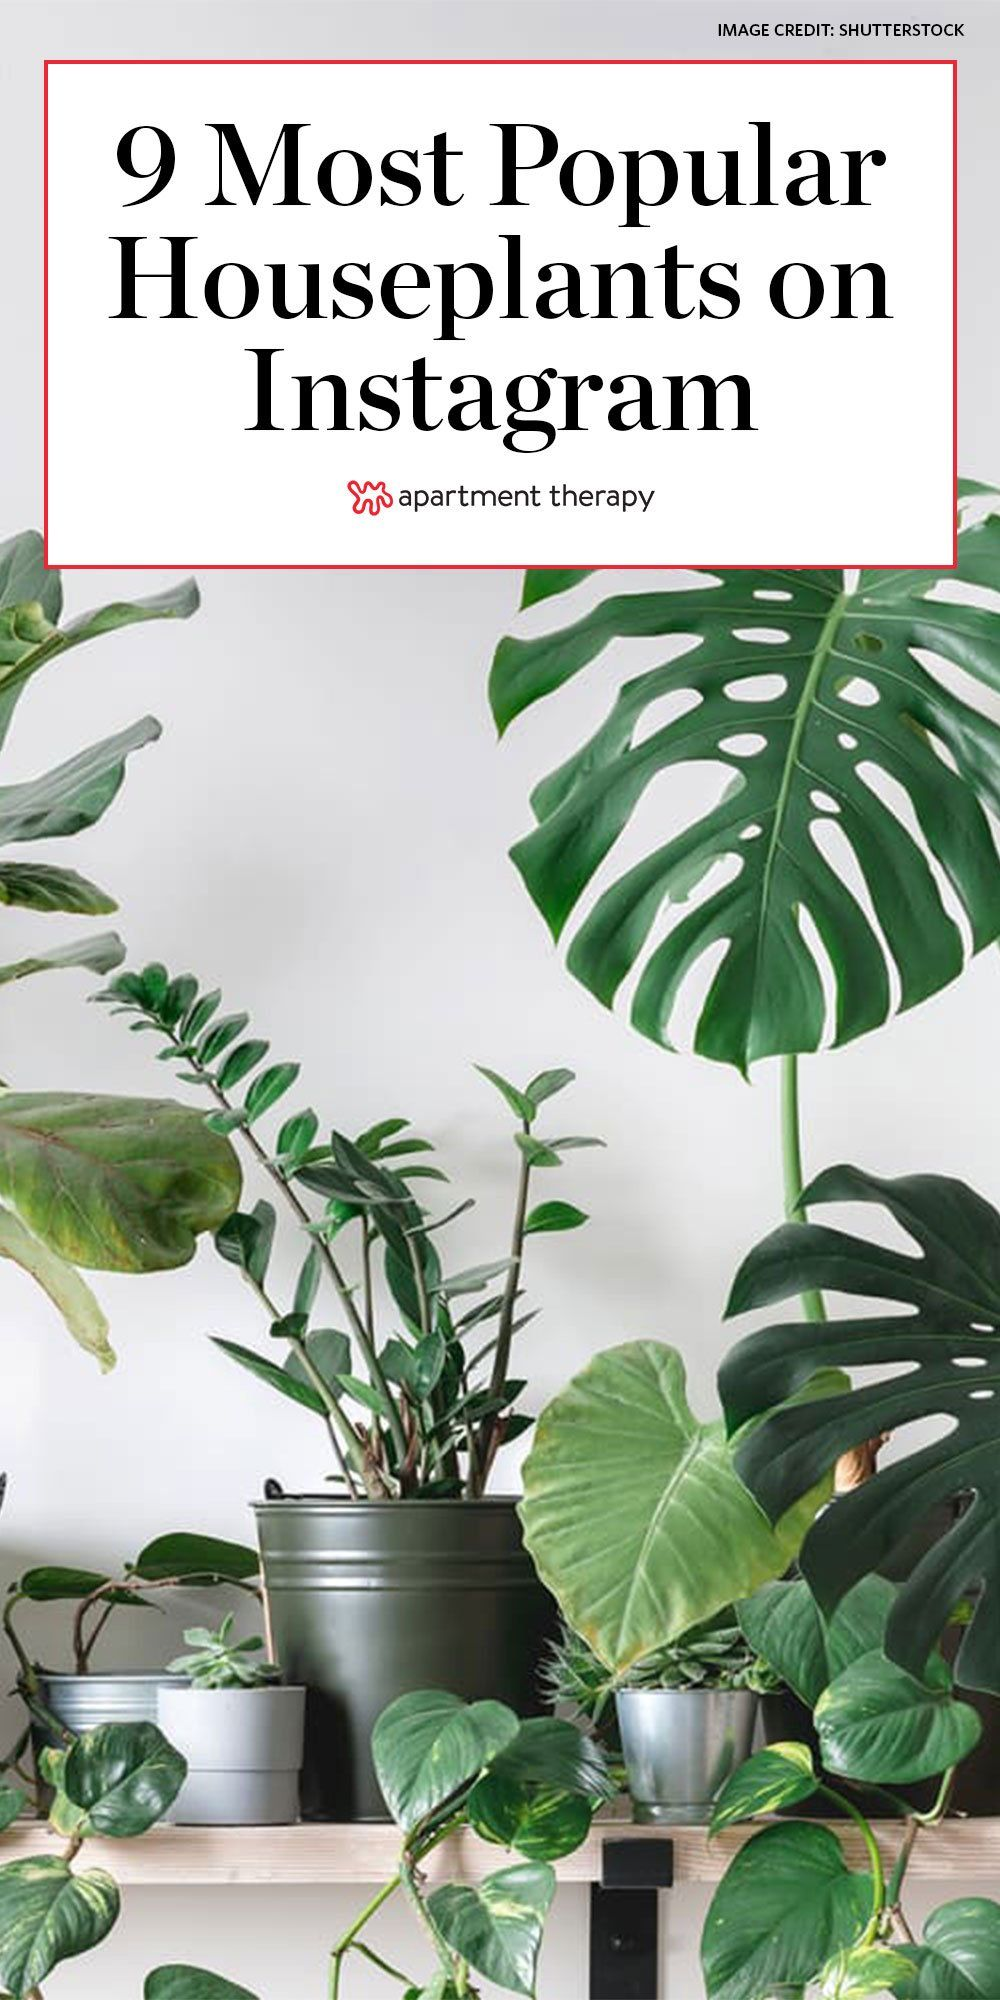 These Are The 9 Most Popular Houseplants On Instagram According To Survey In 2020 Popular House Plants Houseplants Easy House Plants